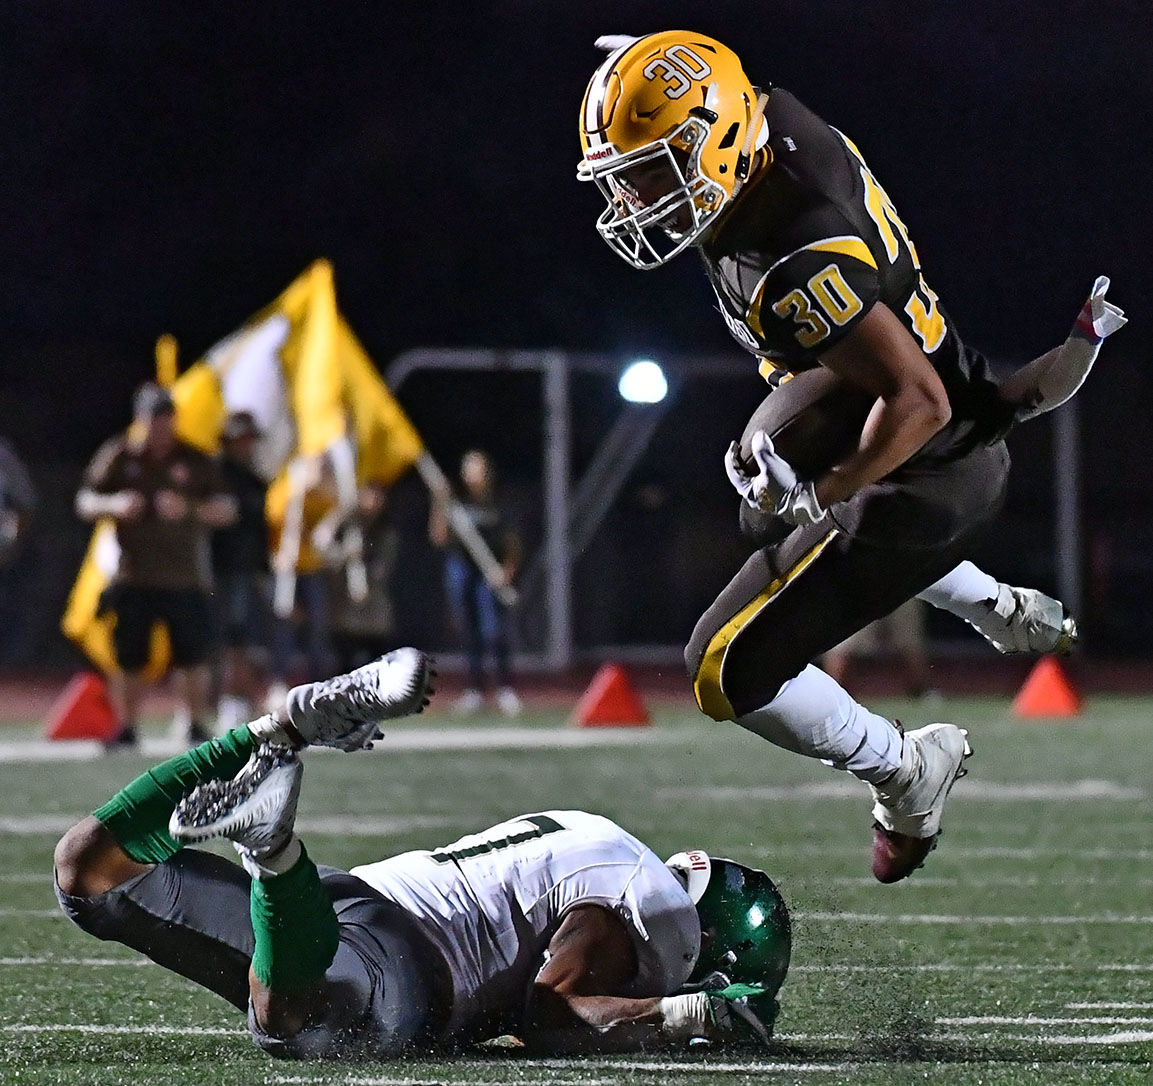 PHOTOS: Don Lugo football vs. South Hills Aug. 30, 2019